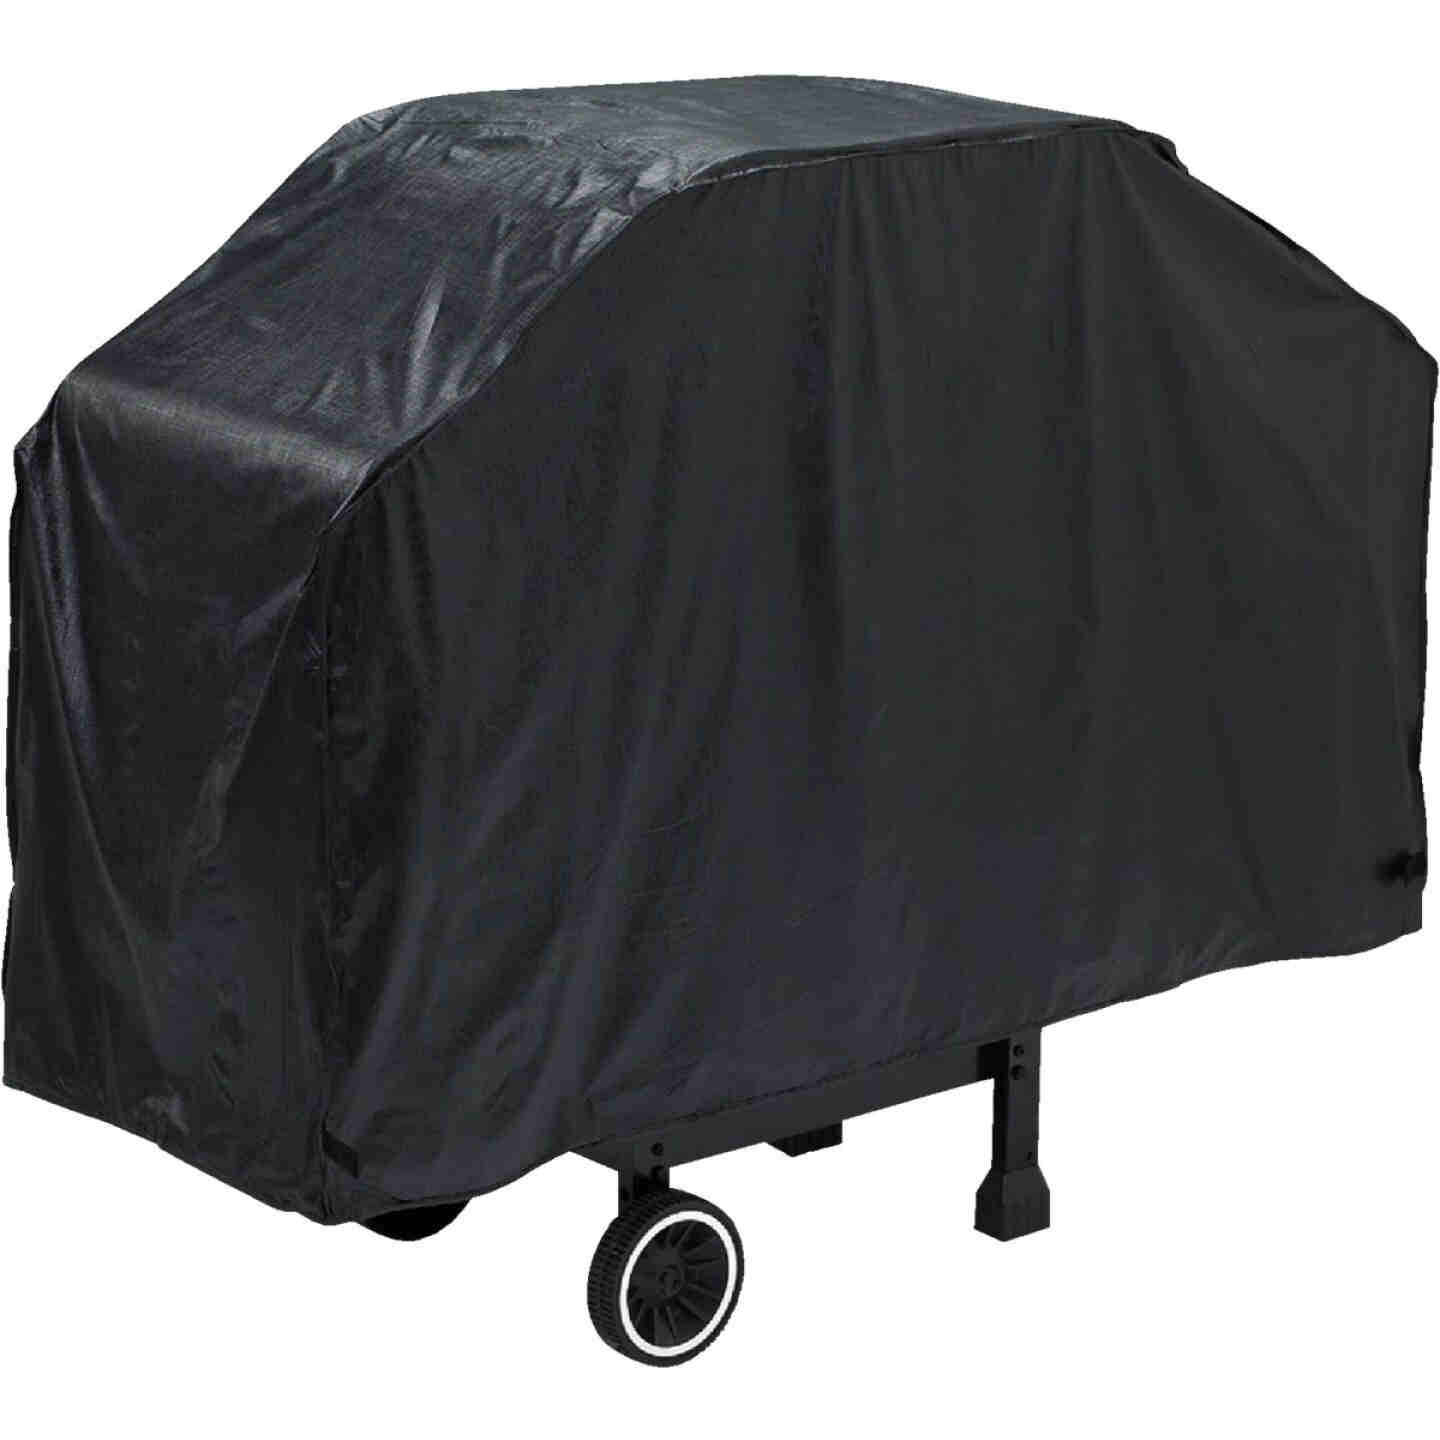 GrillPro Economy 60 In. Black Vinyl Grill Cover Image 1